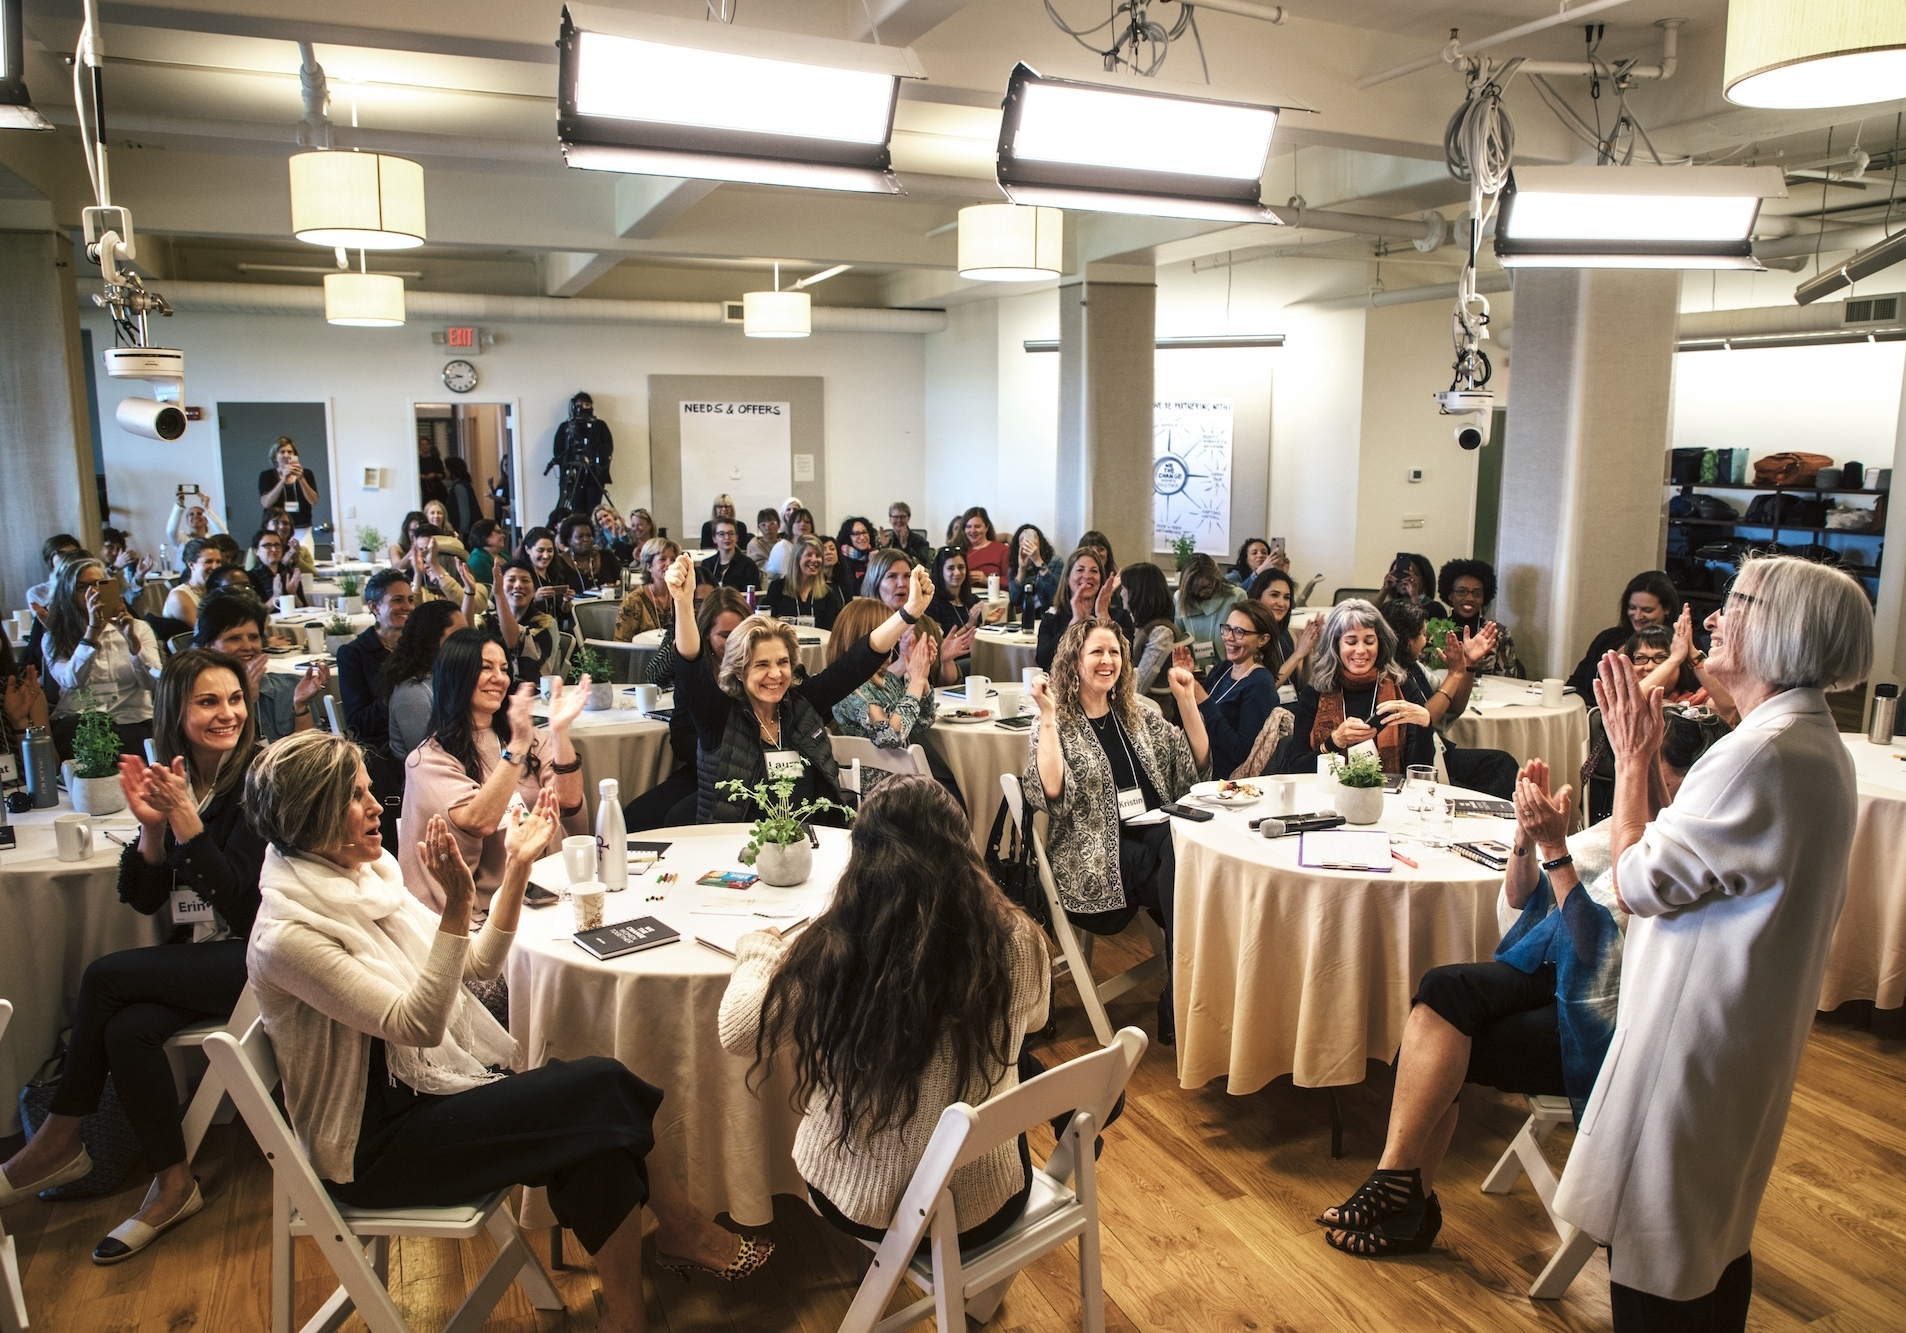 A room full of clapping and cheering women sitting at round tables